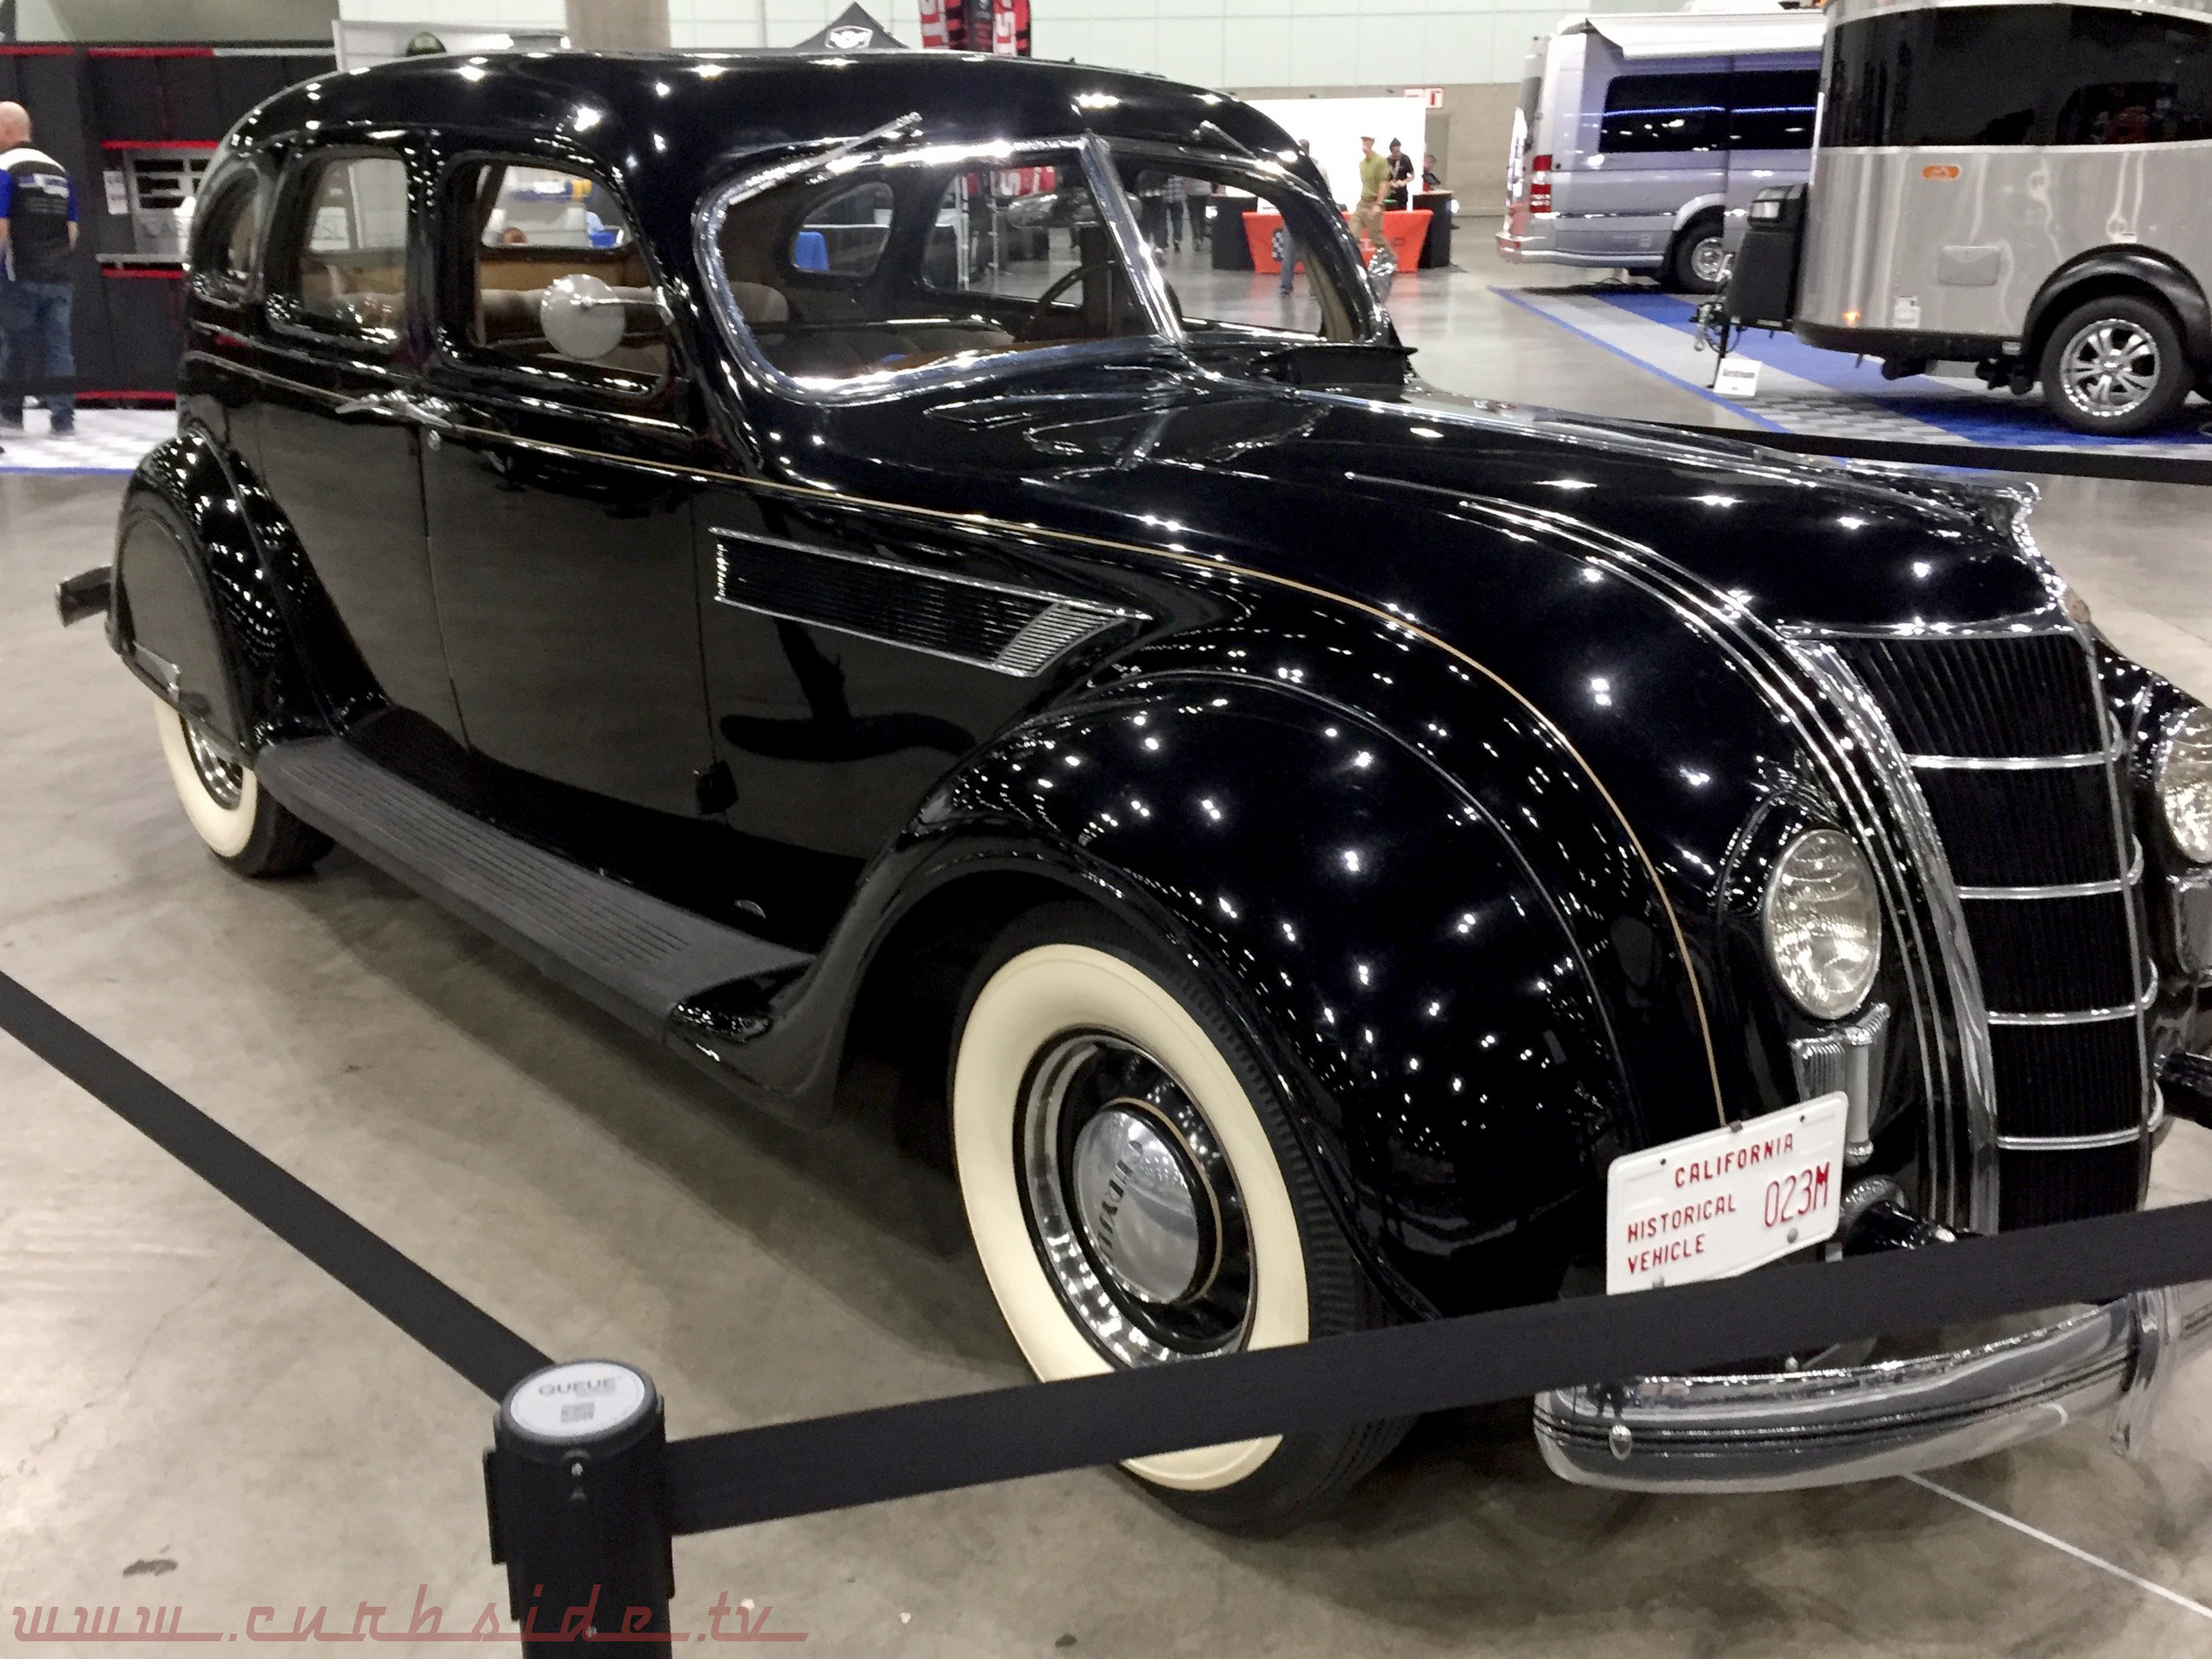 2018 Los Angeles Classic Car Show - Chrysler Airflow